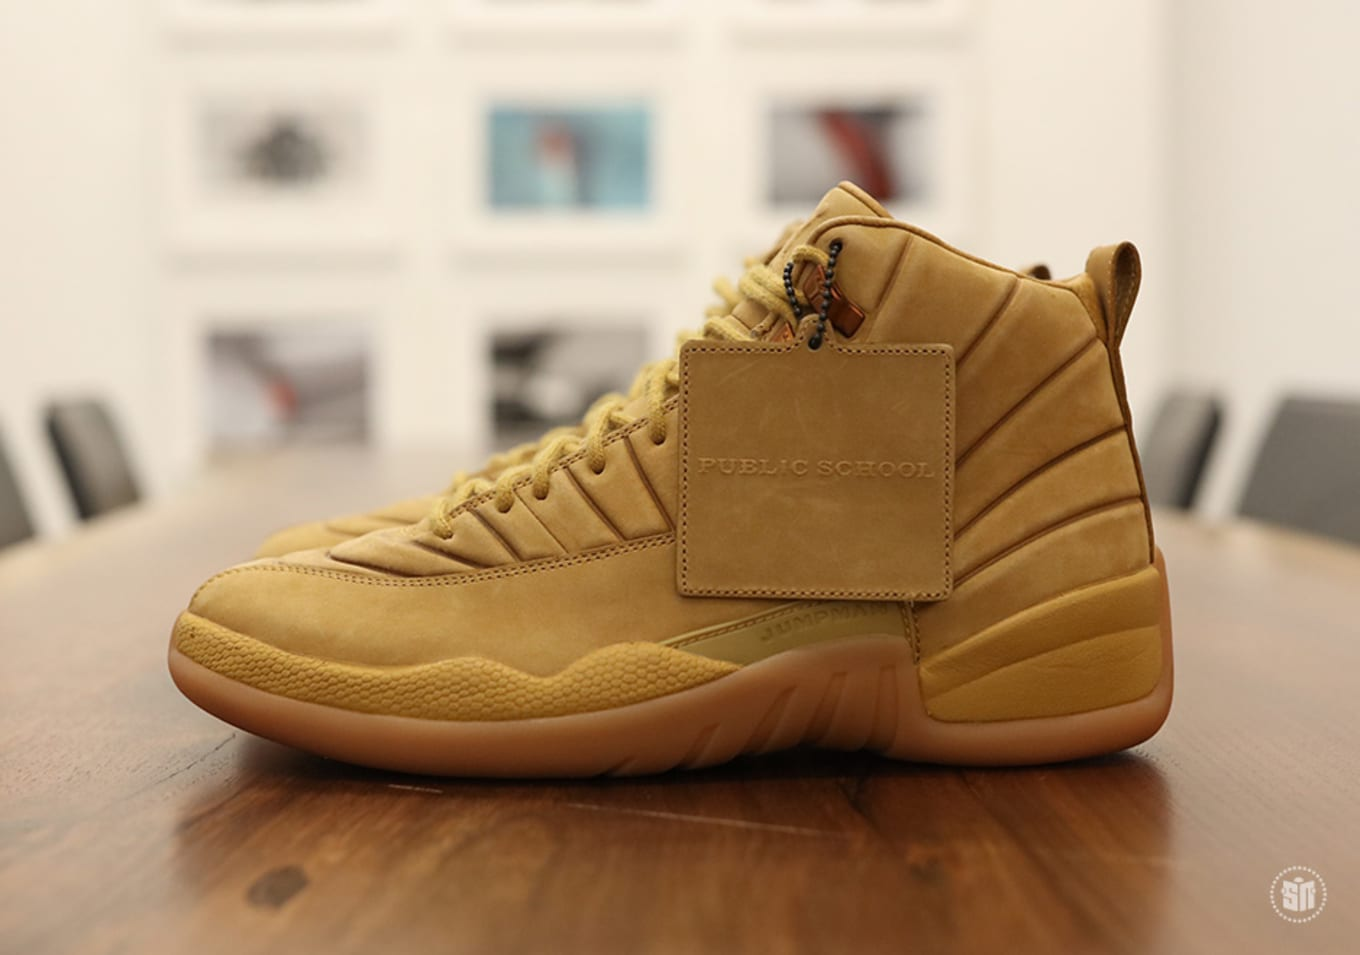 new concept 899d2 31ef5 PSNY x Air Jordan 12 Wheat Release Date | Sole Collector